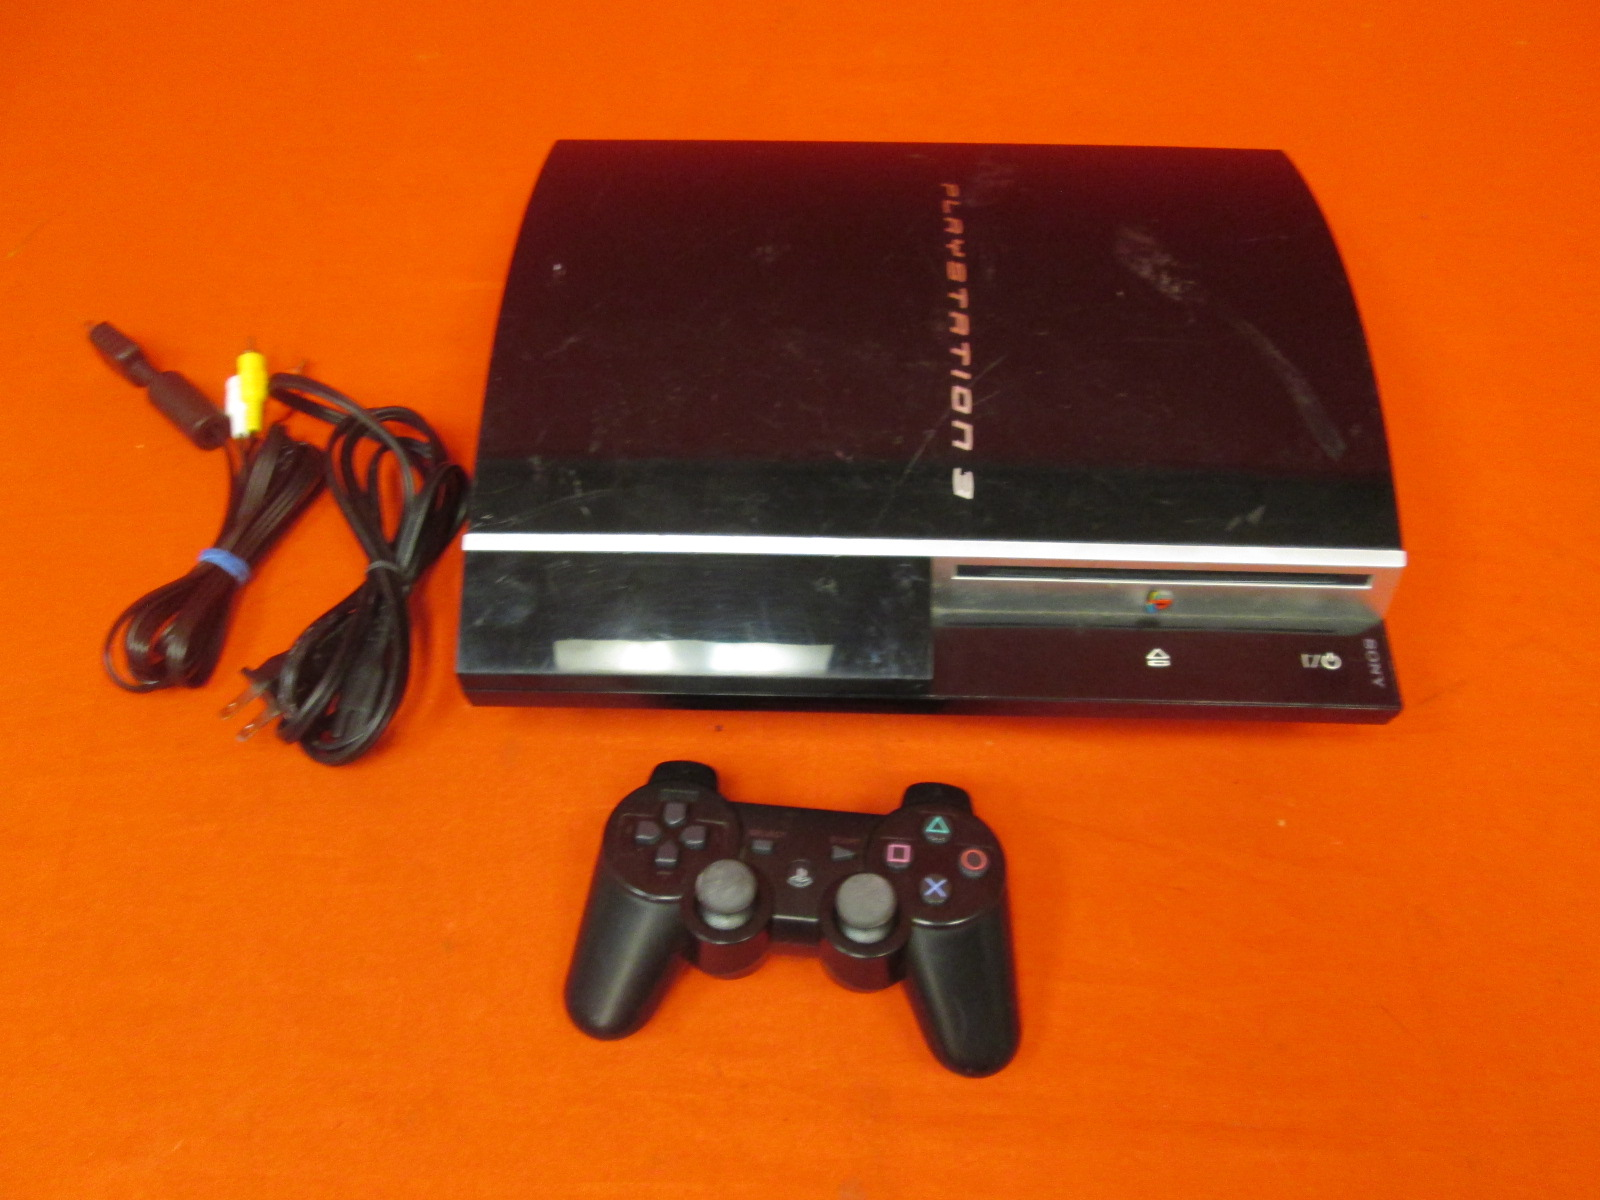 Sony PlayStation 3 CECHL01 System Video Game System With Controller No